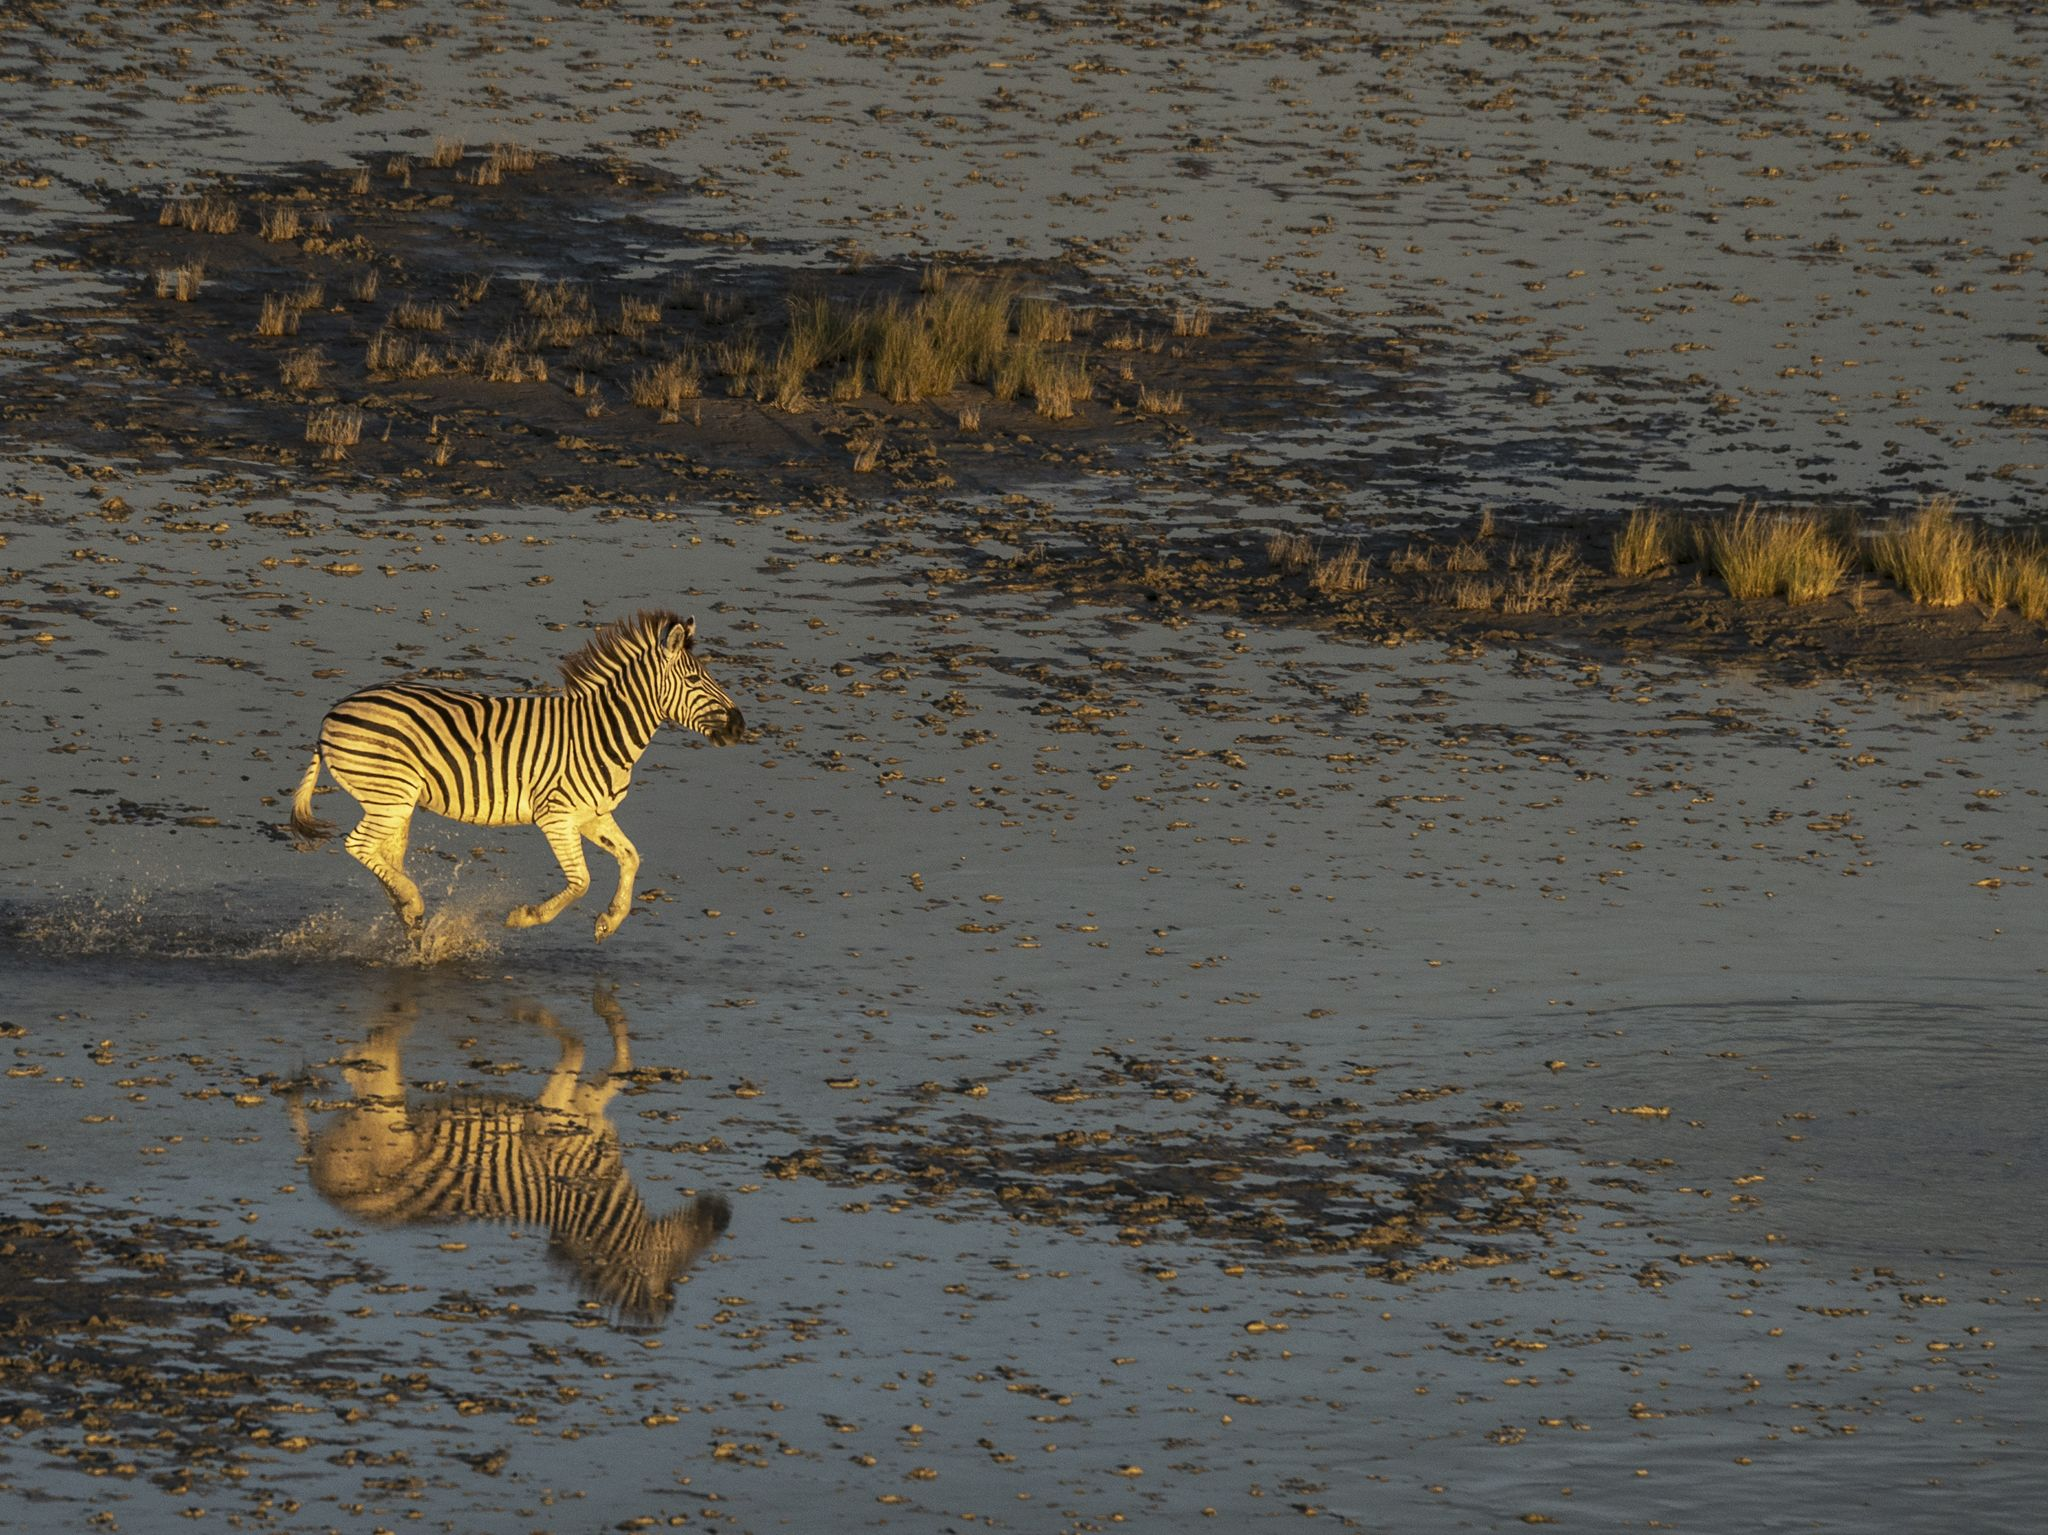 A Zebra running across the wet Makgadikgadi Salt Pan. This image is from Okavango River of Dreams. [Photo of the day - April 2020]